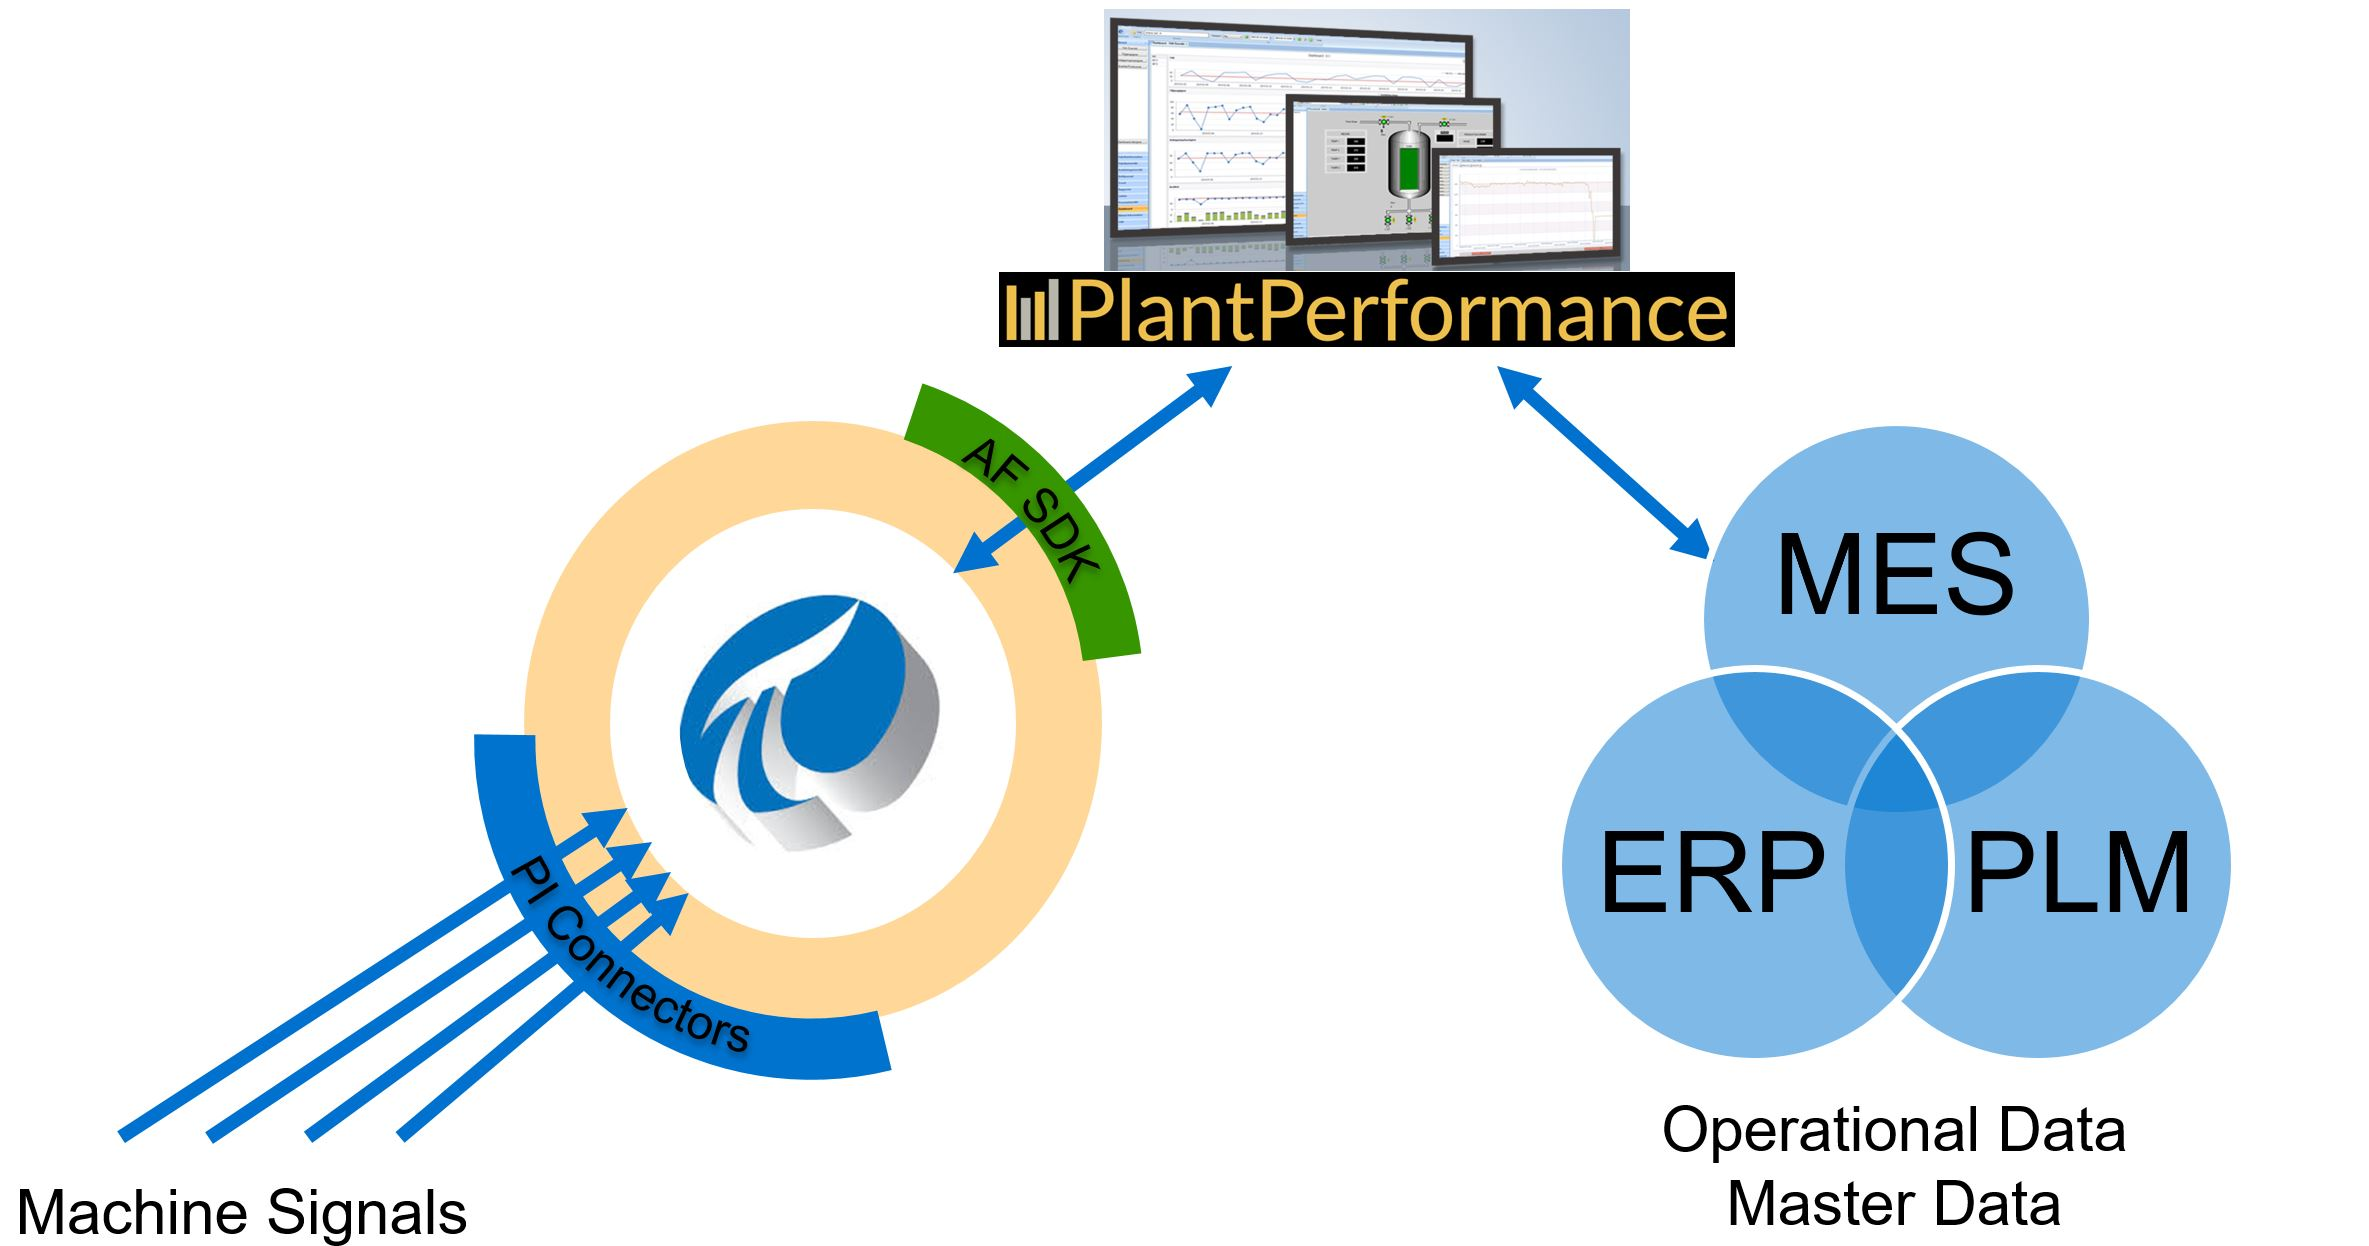 PlantPerformance Marchitecture